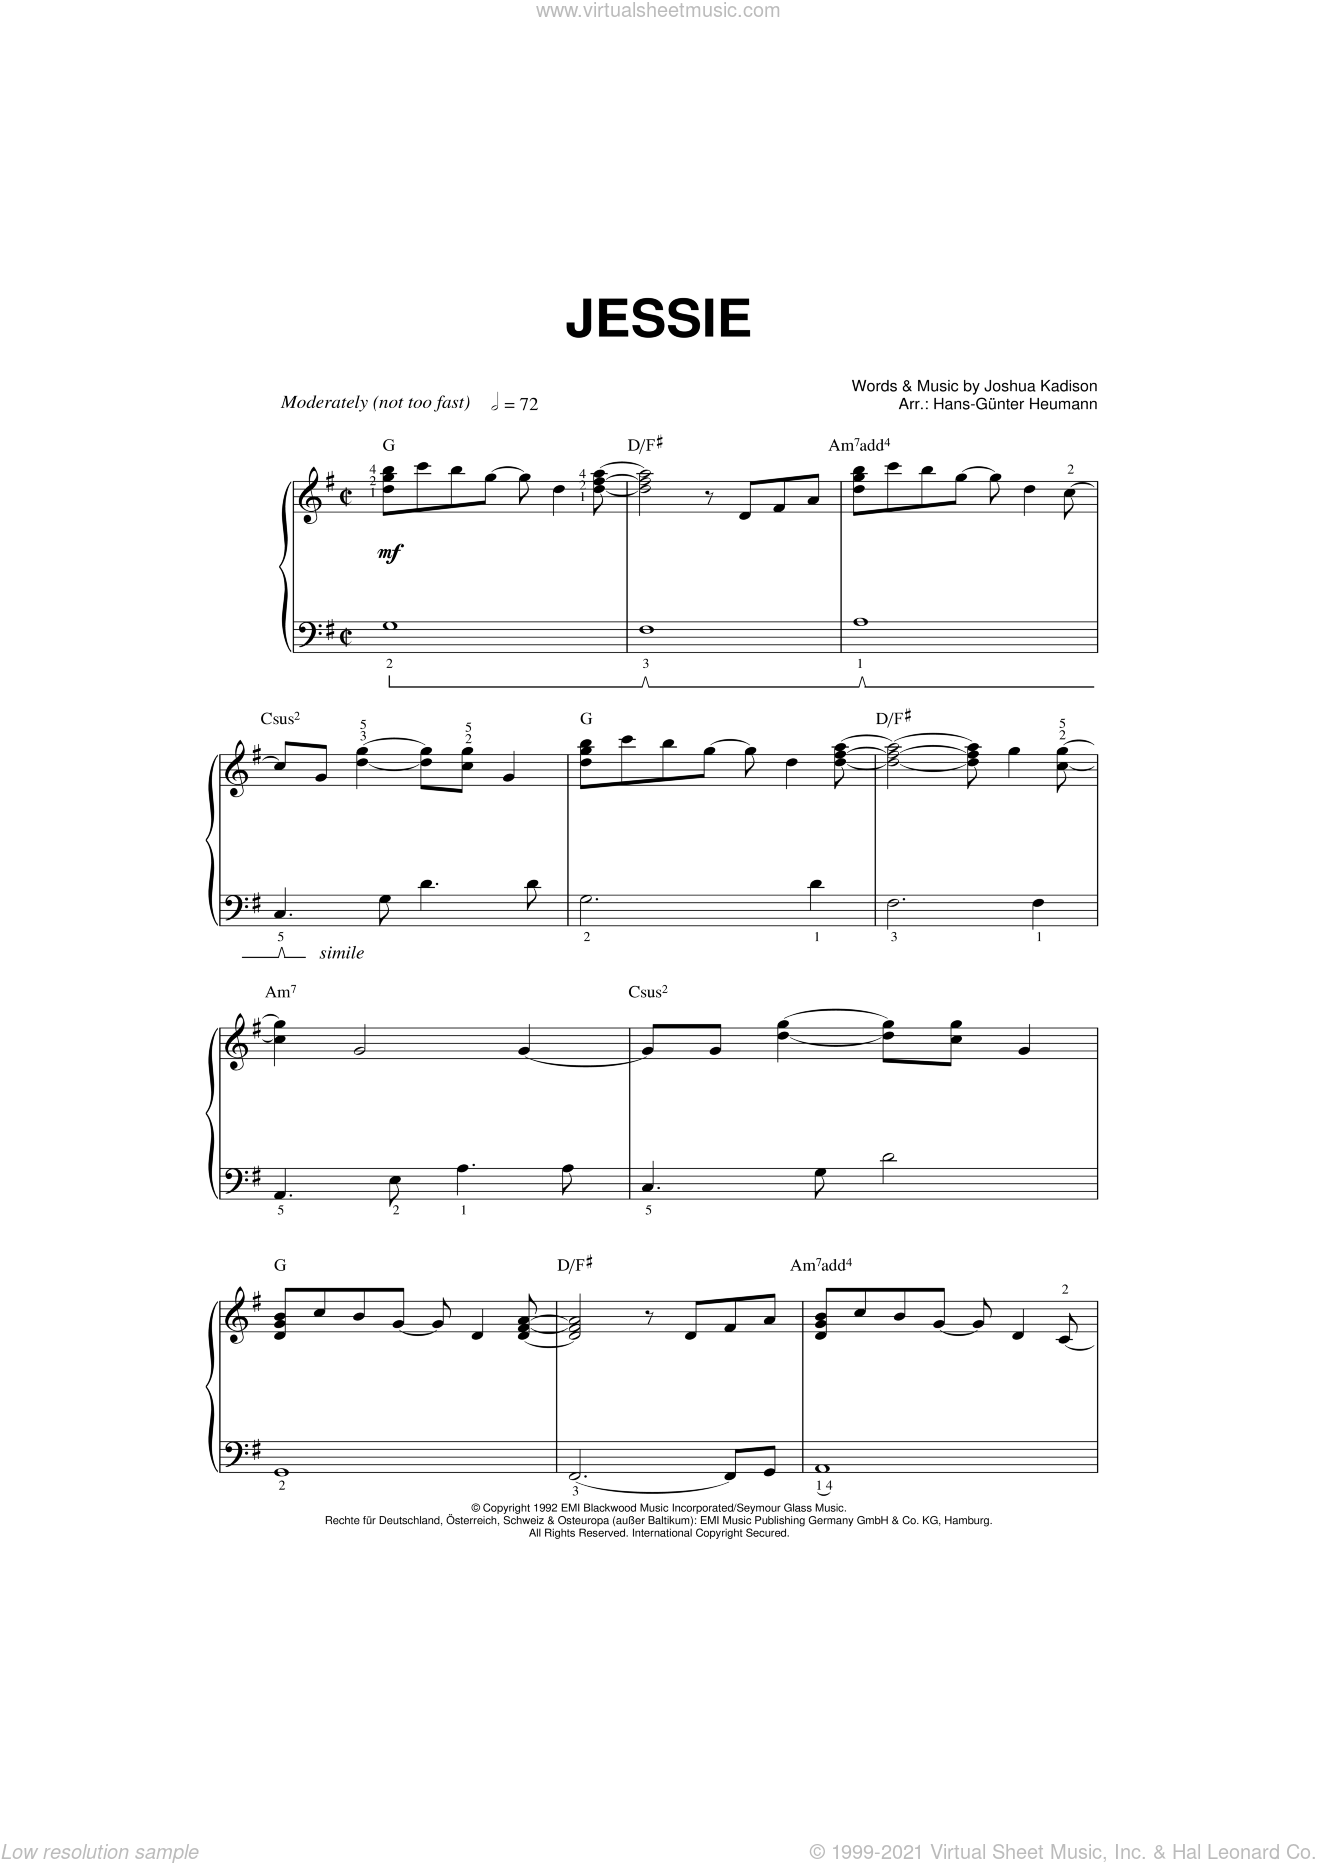 Jessie sheet music for voice and piano by Joshua Kadison and Hans-Gunter Heumann, intermediate skill level